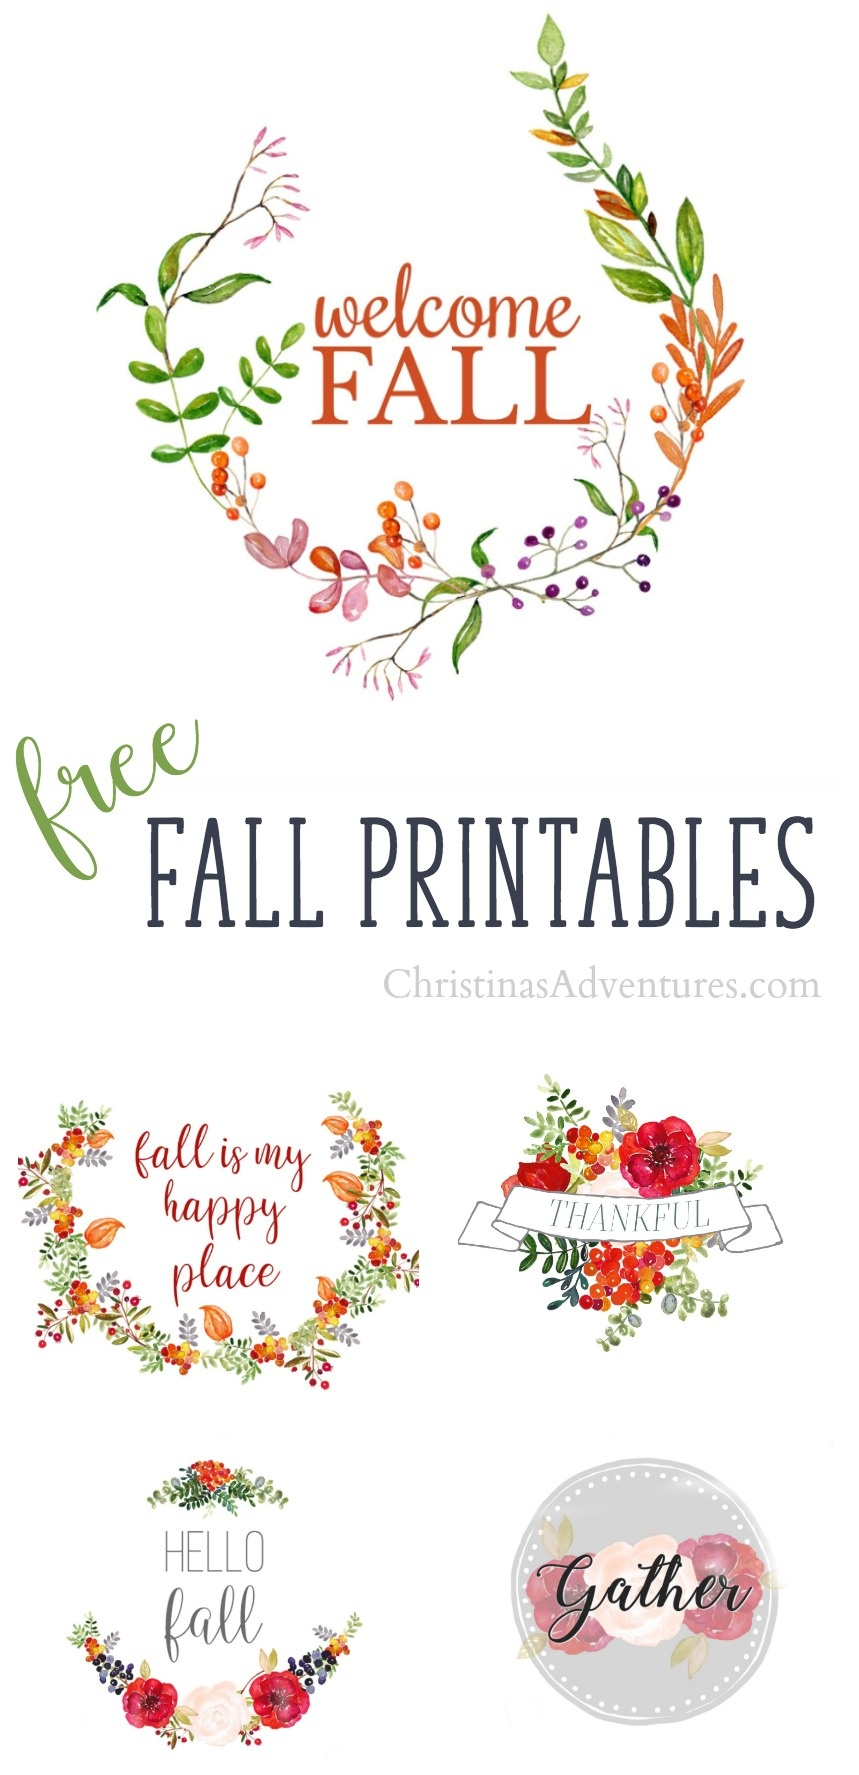 5 Free Fall Printables - Christinas Adventures - Free Fall Printables